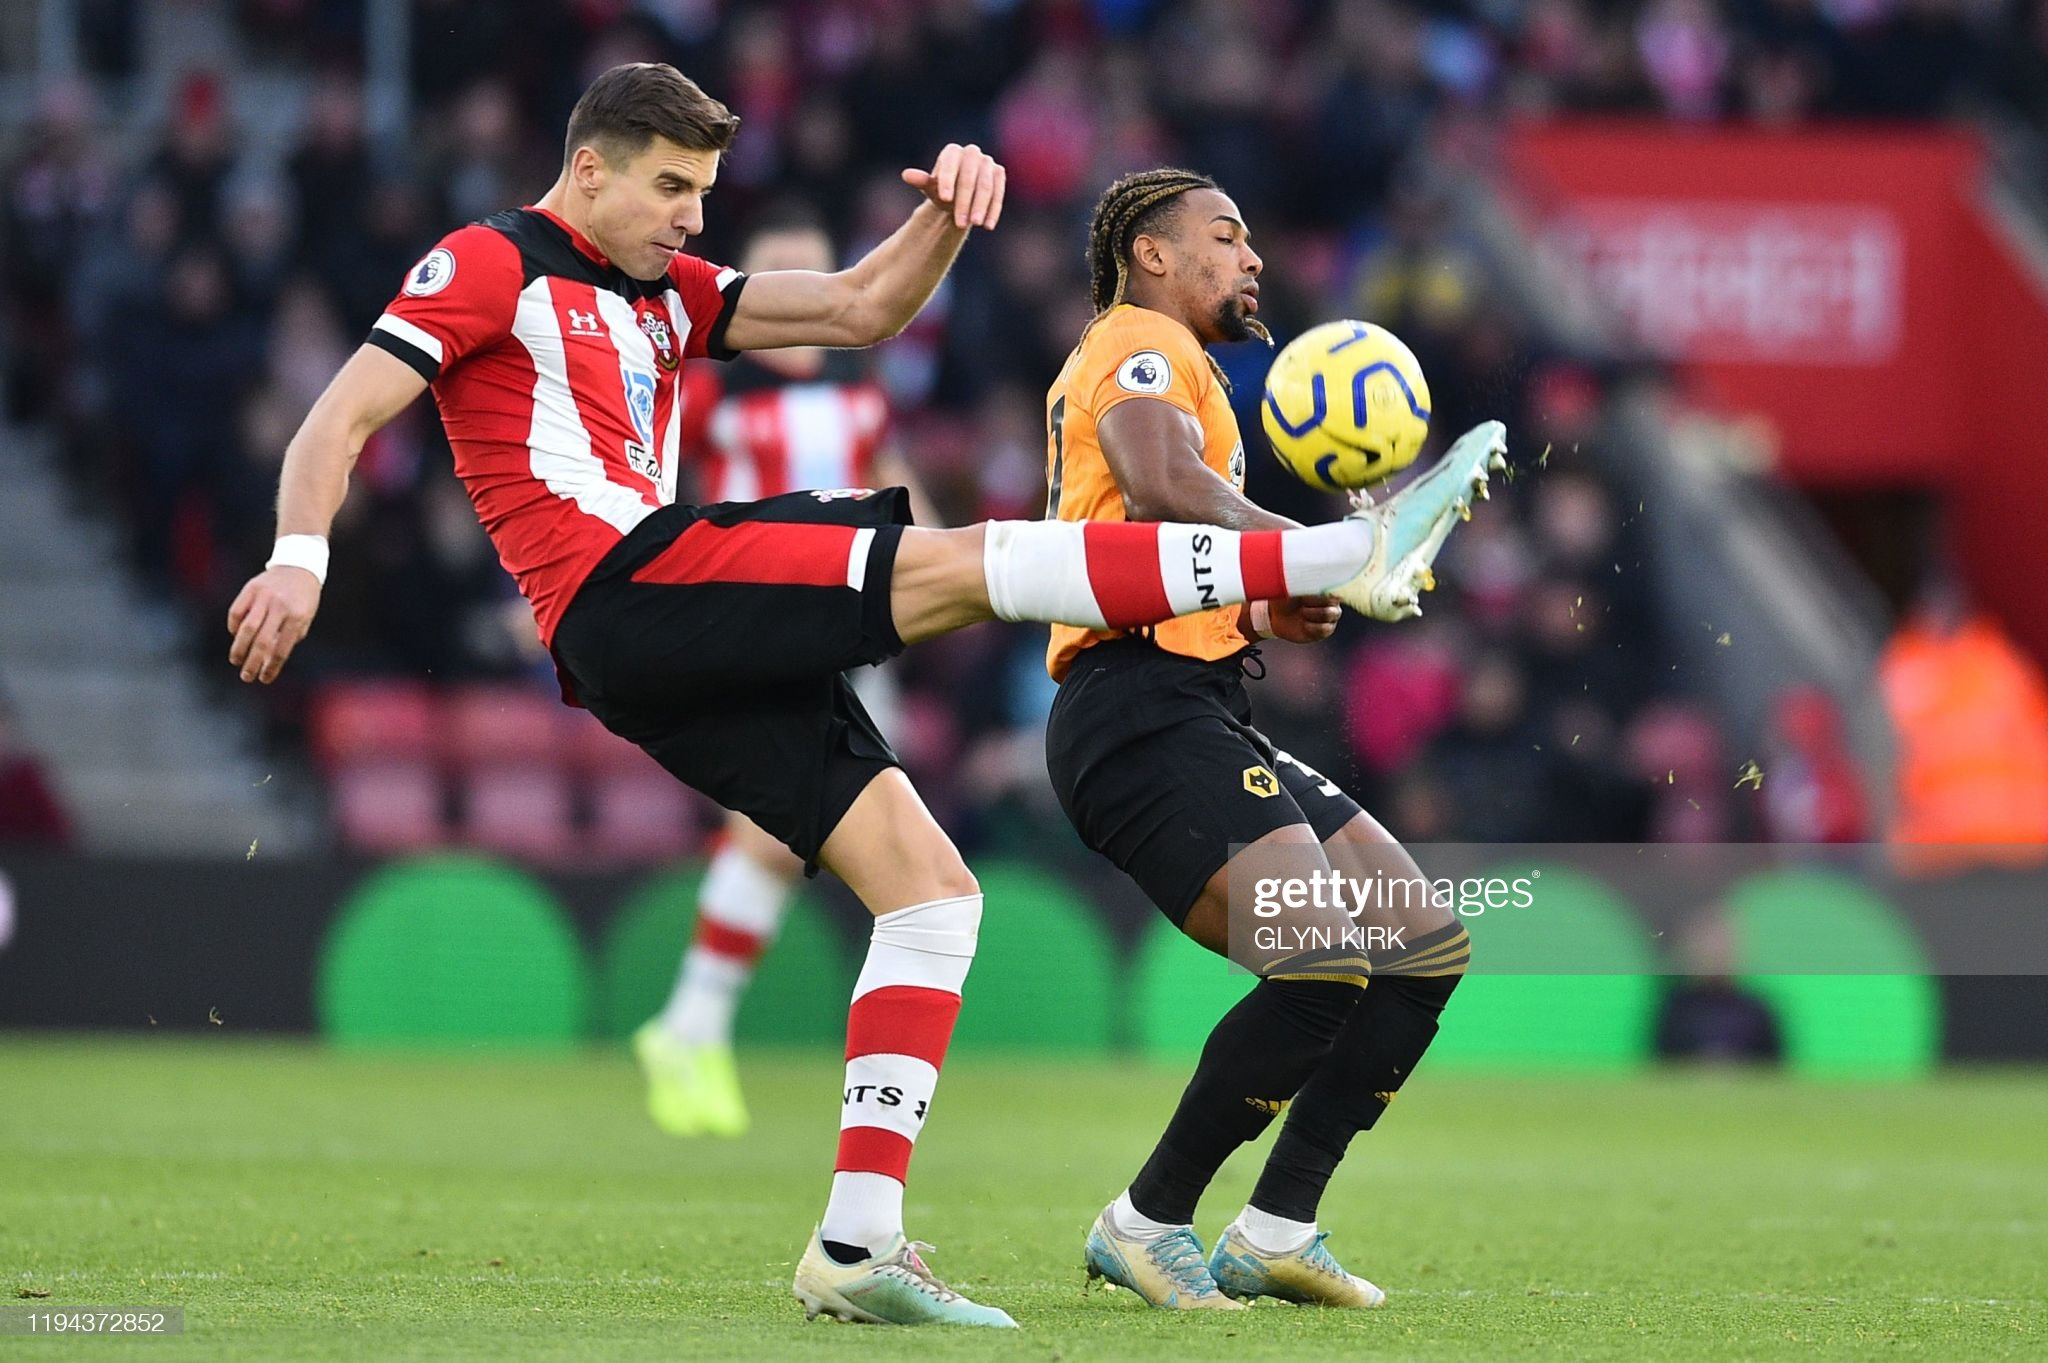 Wolves vs Southampton preview, prediction and odds